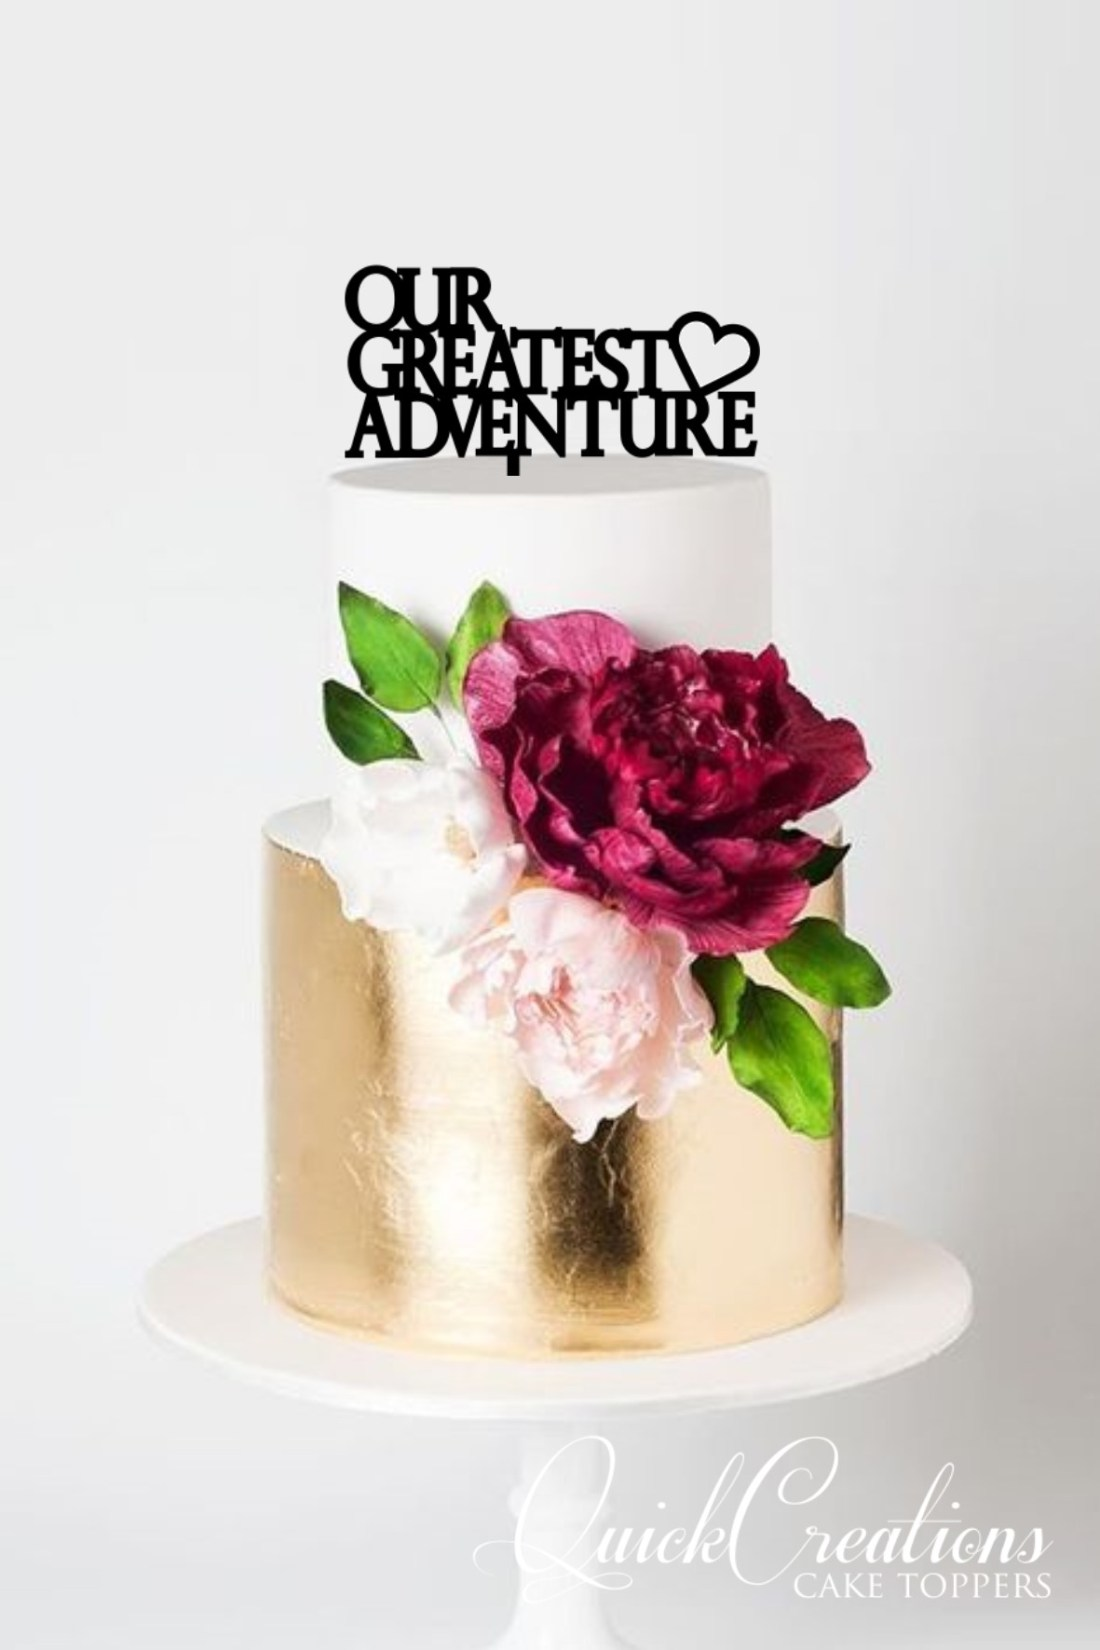 Quick Creations Cake Topper - Our Greatest Adventure Heart